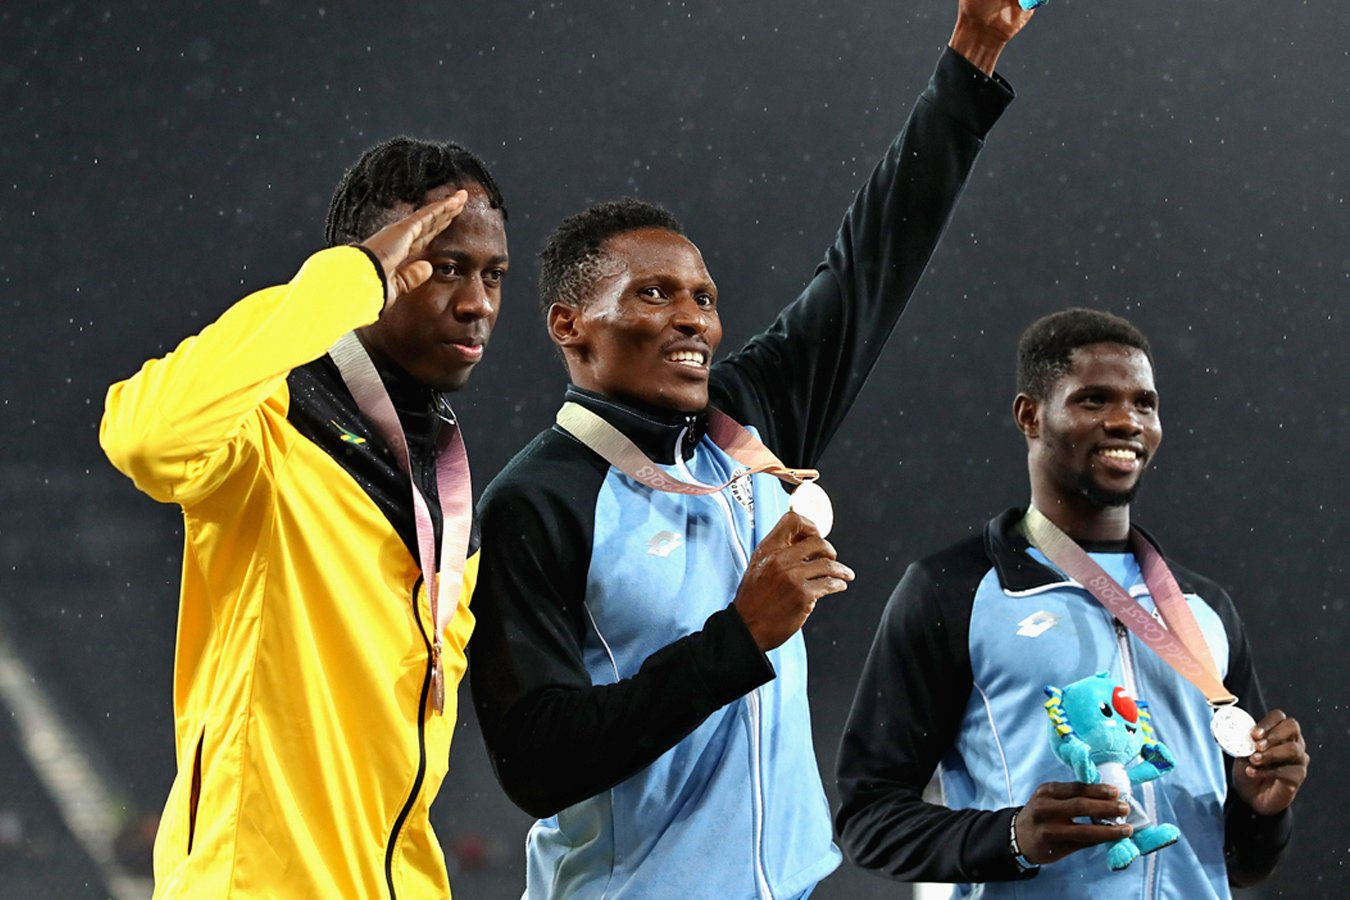 Bronze medallist Javon Francis of Jamaica and Botswanan's gold medallist Isaac Makwala and silver medallist Baboloki Thebe celebrate during the medal ceremony for the men's 400m. / Photo credit: GC2018